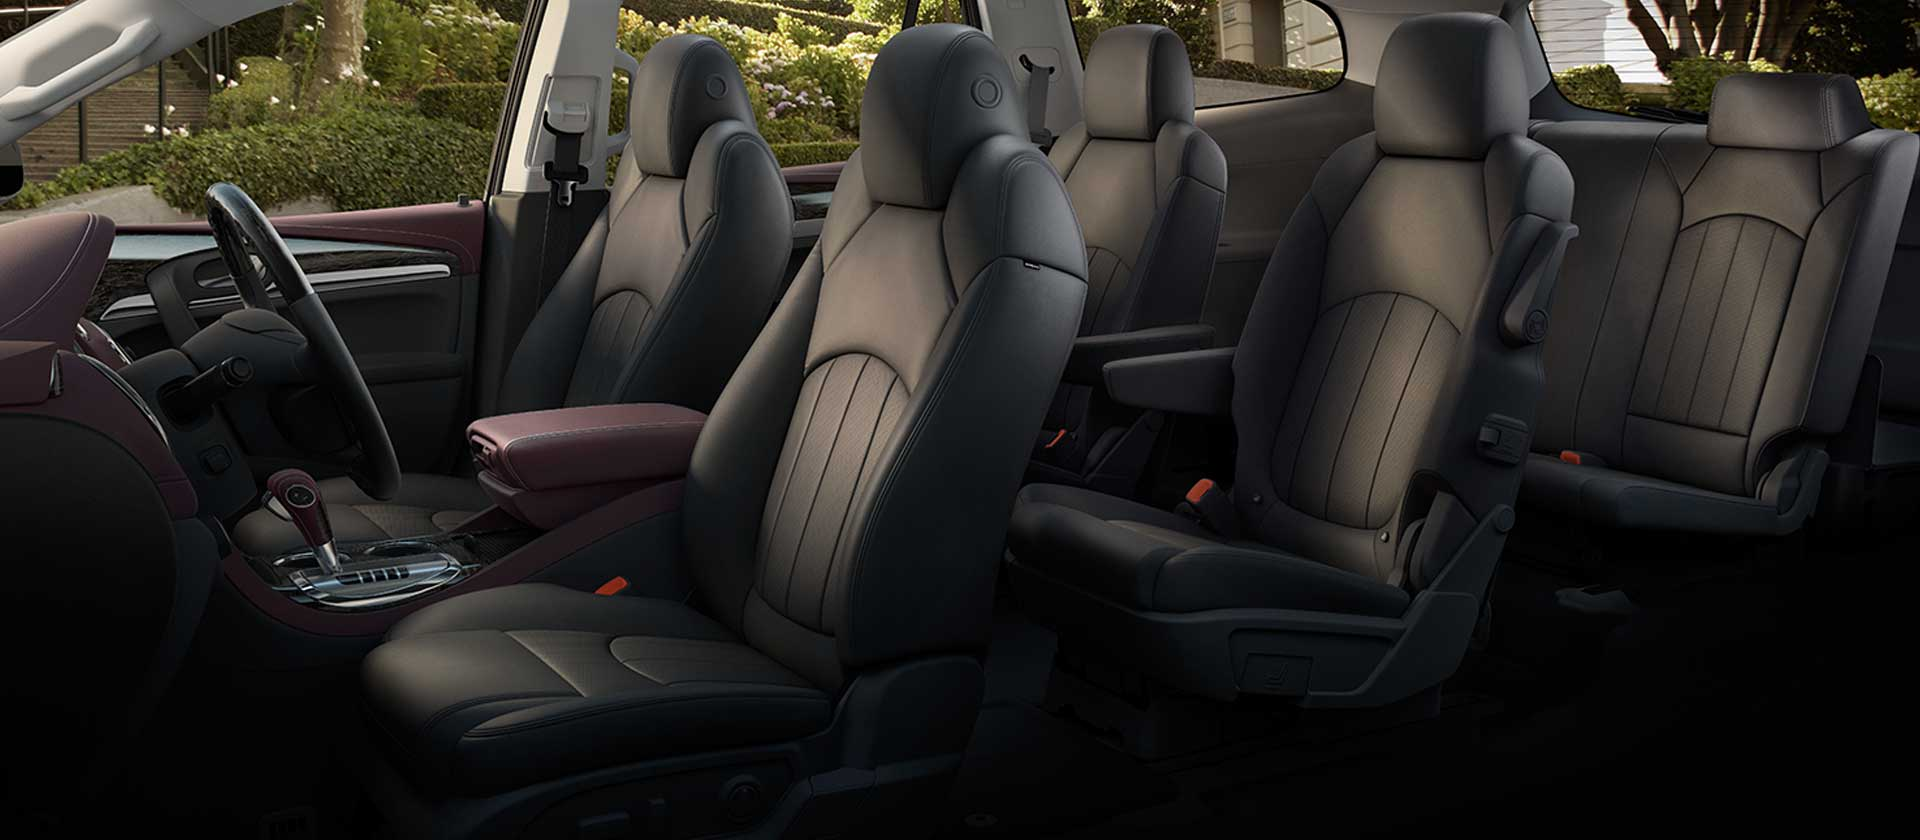 There is Plenty of Room Inside the 2017 Enclave